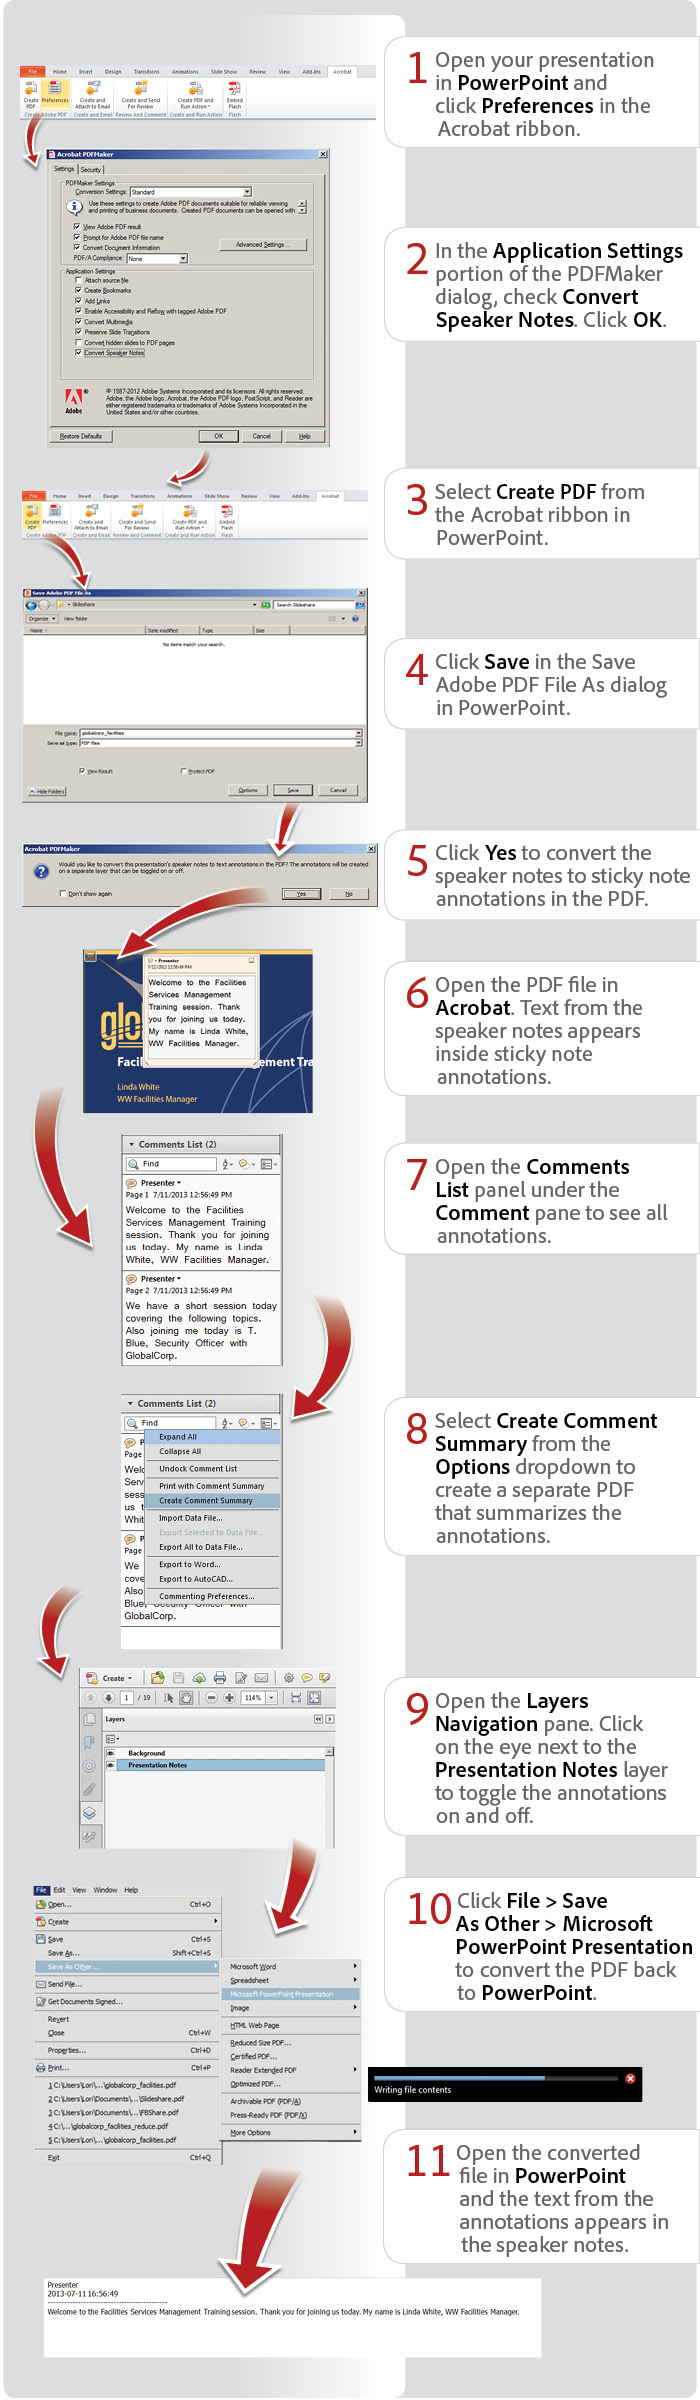 How to convert PowerPoint to PDF, convert to PDF, PPT to PDF - Adobe